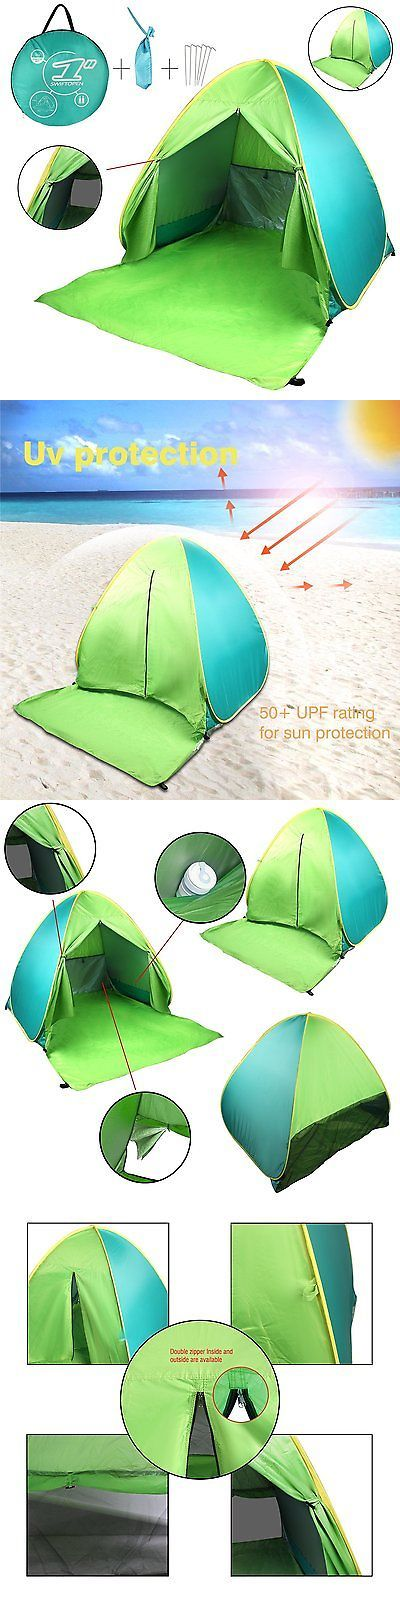 Tents 179010: Fbsport Portable Lightweight Beach Tent ,Automatic Pop Up Sun Shelter Cabana Upf -> BUY IT NOW ONLY: $30.42 on eBay!